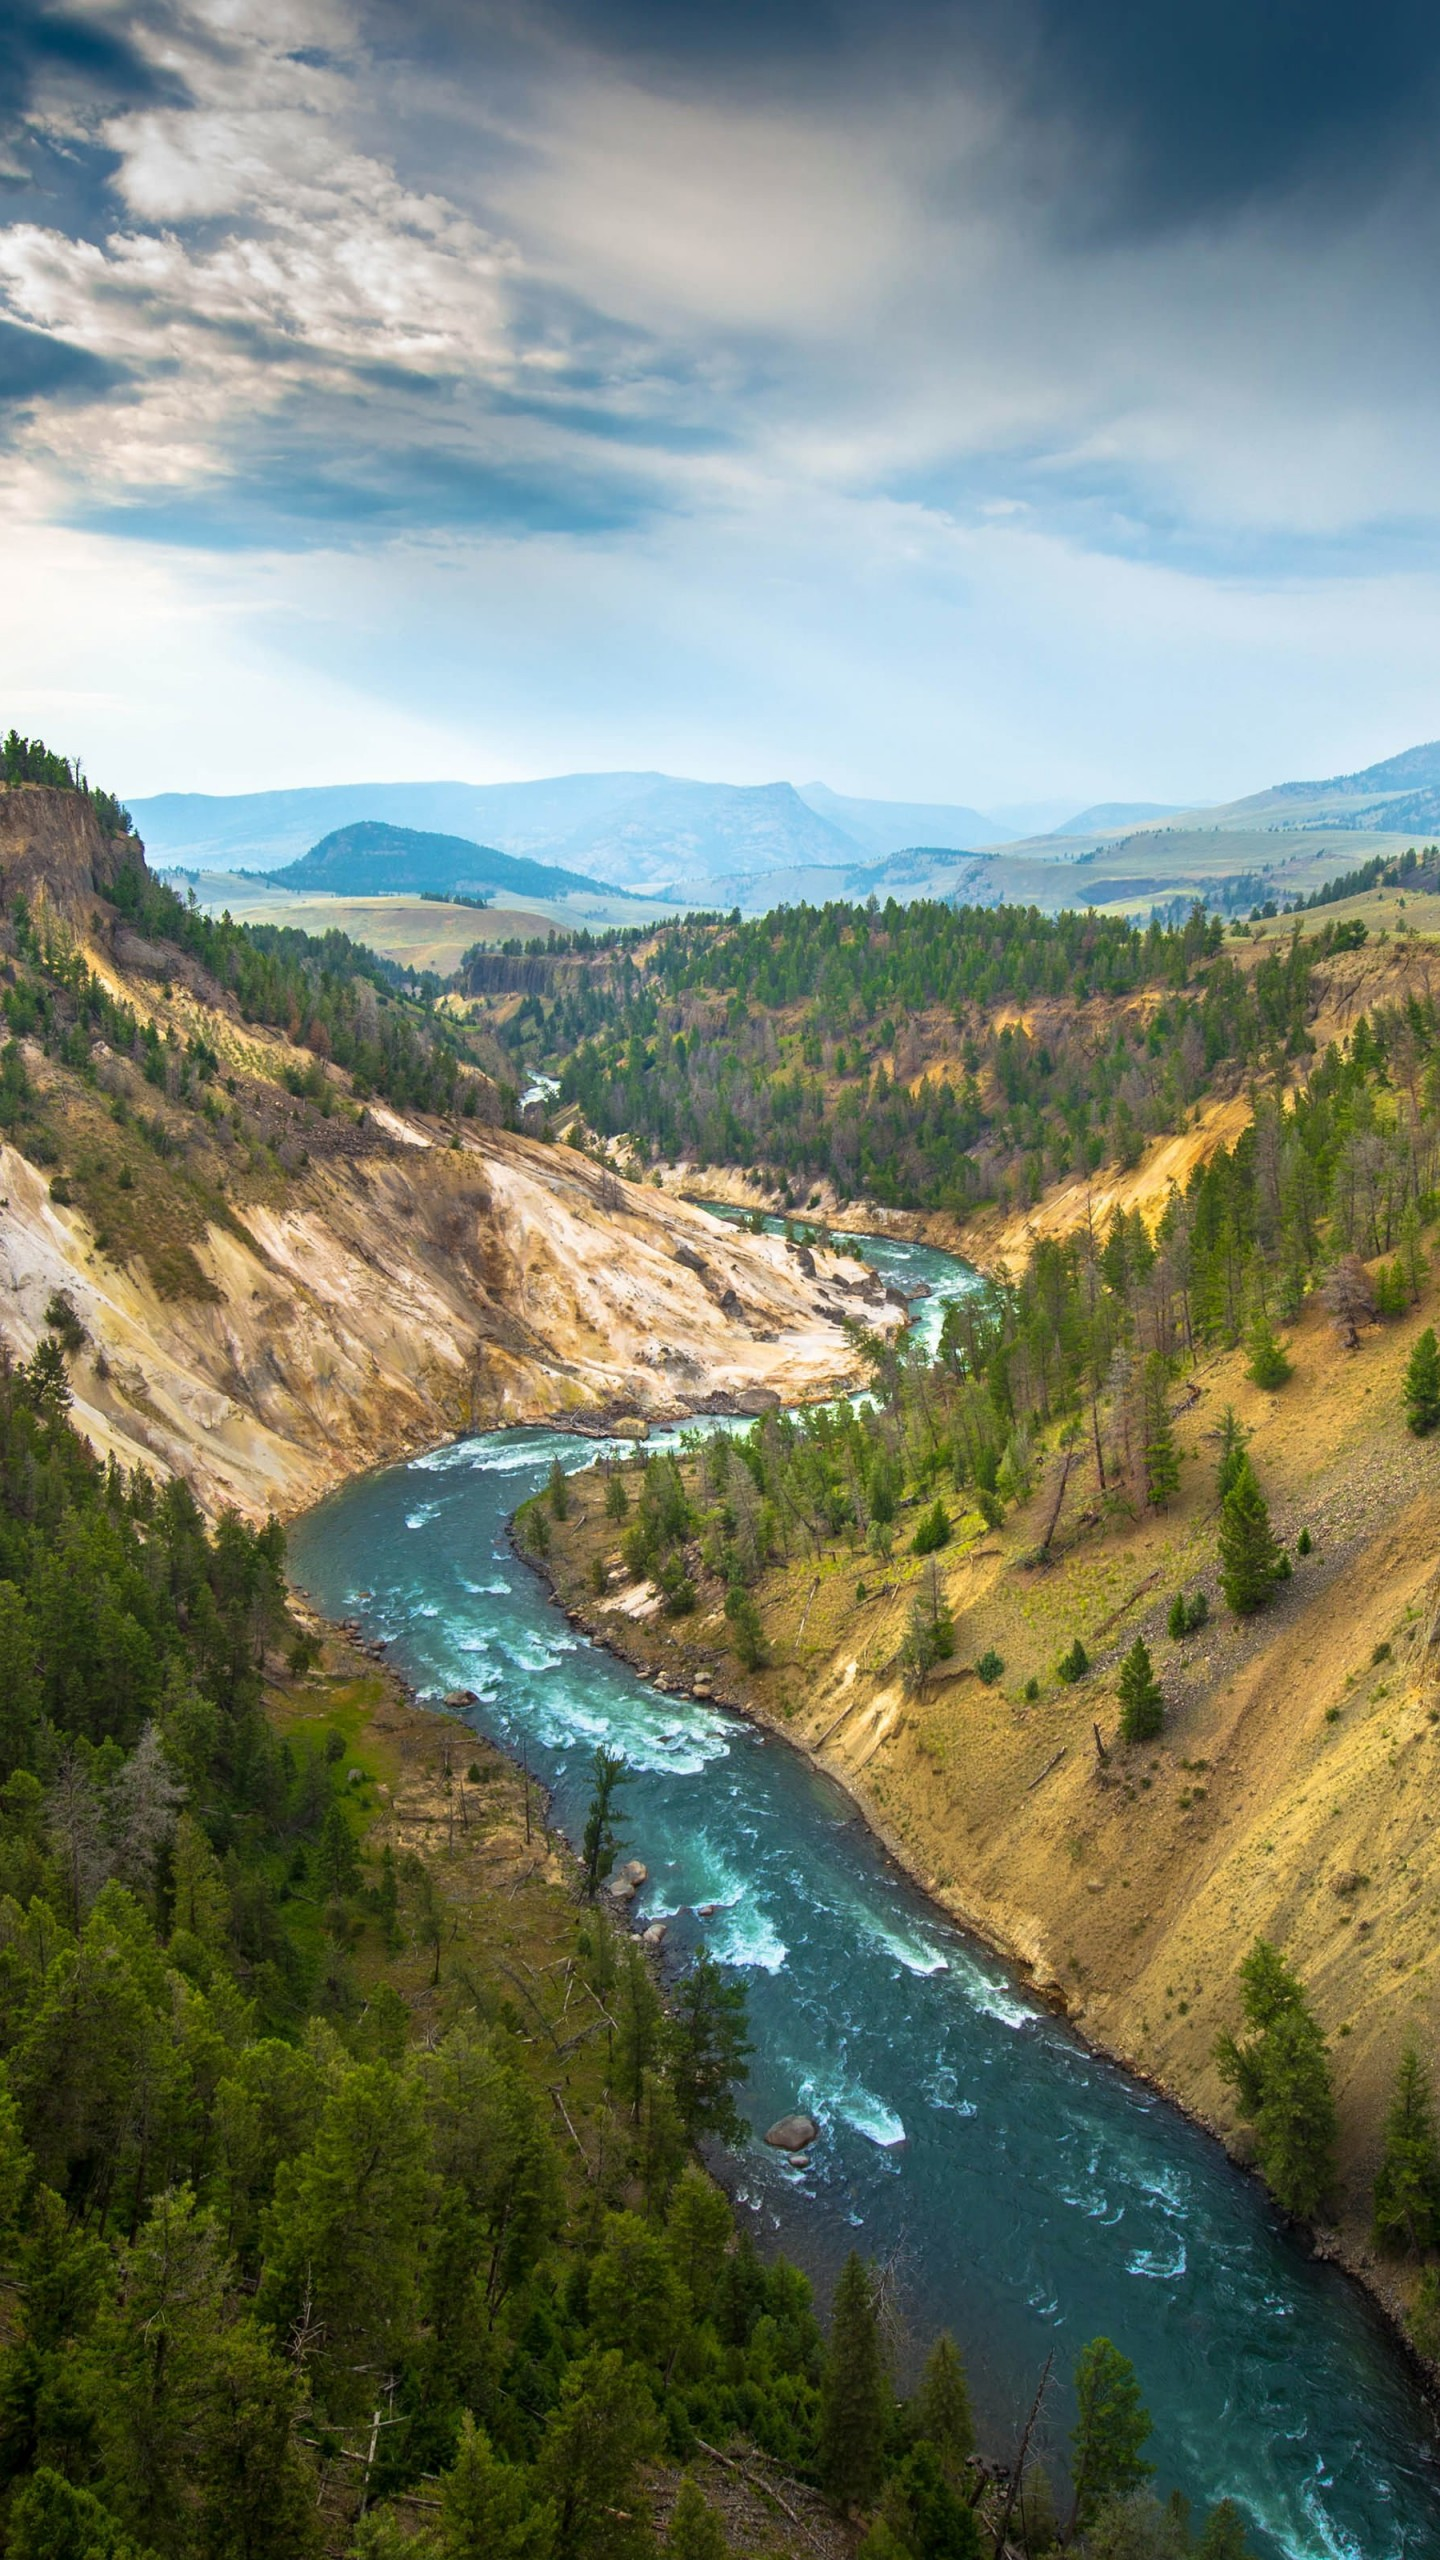 The River, Grand Canyon of Yellowstone National Park, USA Wallpaper for Google Nexus 6P